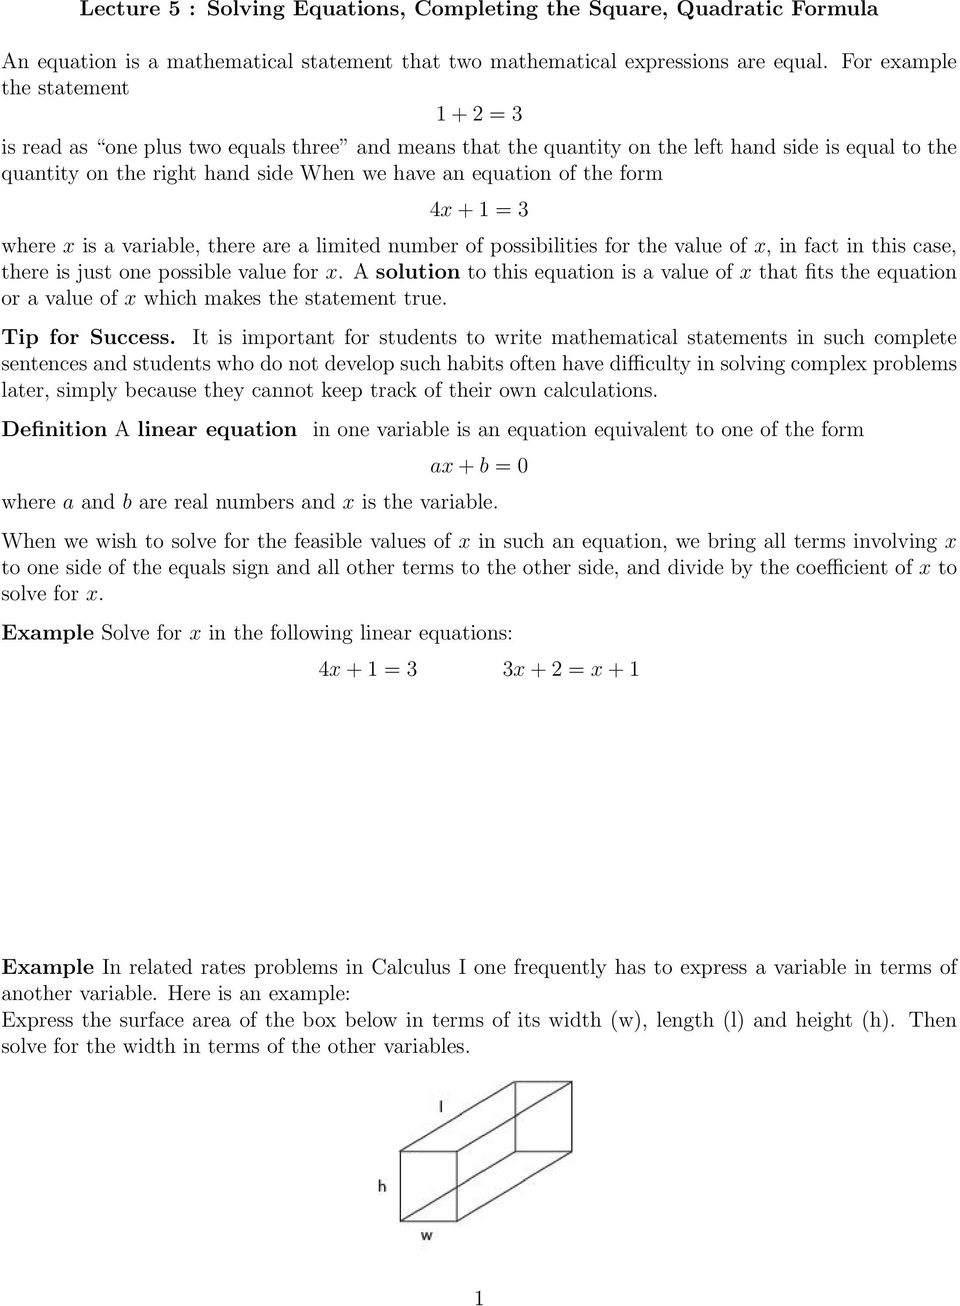 there are a limited number of possibilities for the value of x, in fact in this case, there is just one possible value for x A solution to this equation is a value of x that fits the equation or a